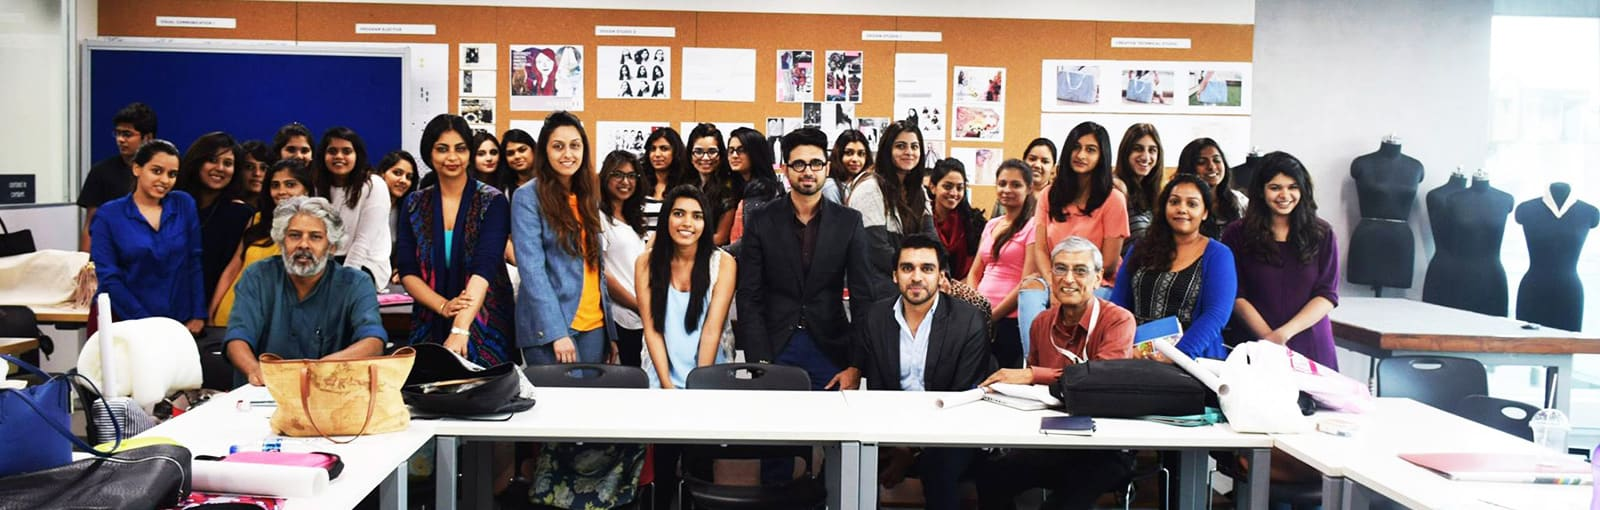 fashion and communication If you wish to pursue a career within the fashion industry, specifically fashion communication and branding, then this course is for you this unique mix of both fashion communication and branding will give you the skills you will need to be creative, confident, well-informed fashion communicators .